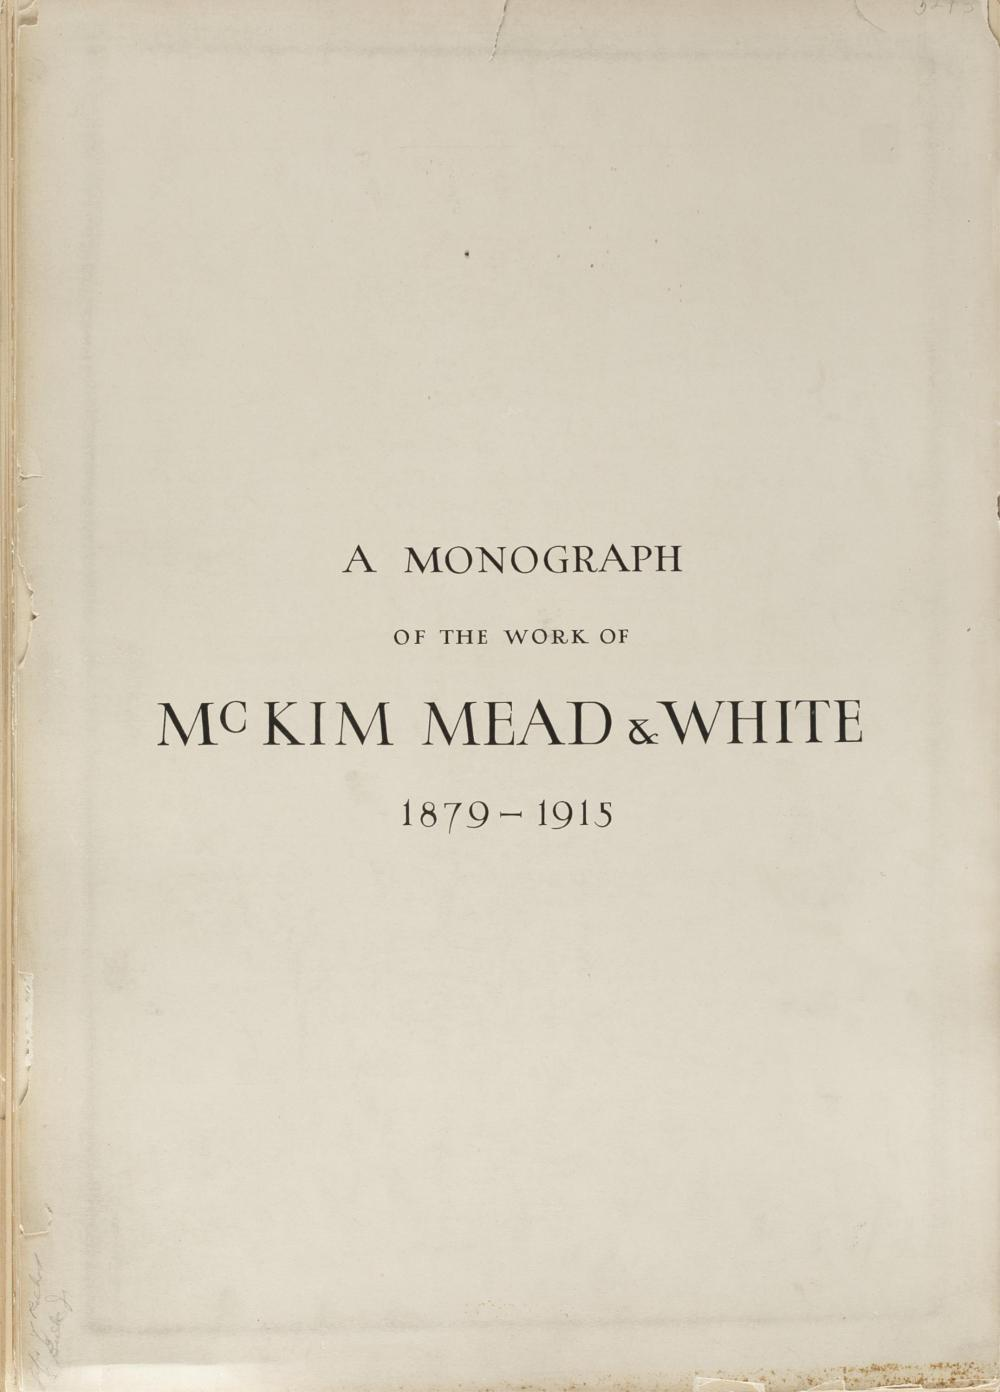 Lot 219: Monograph on the work of McKim Mead & White.